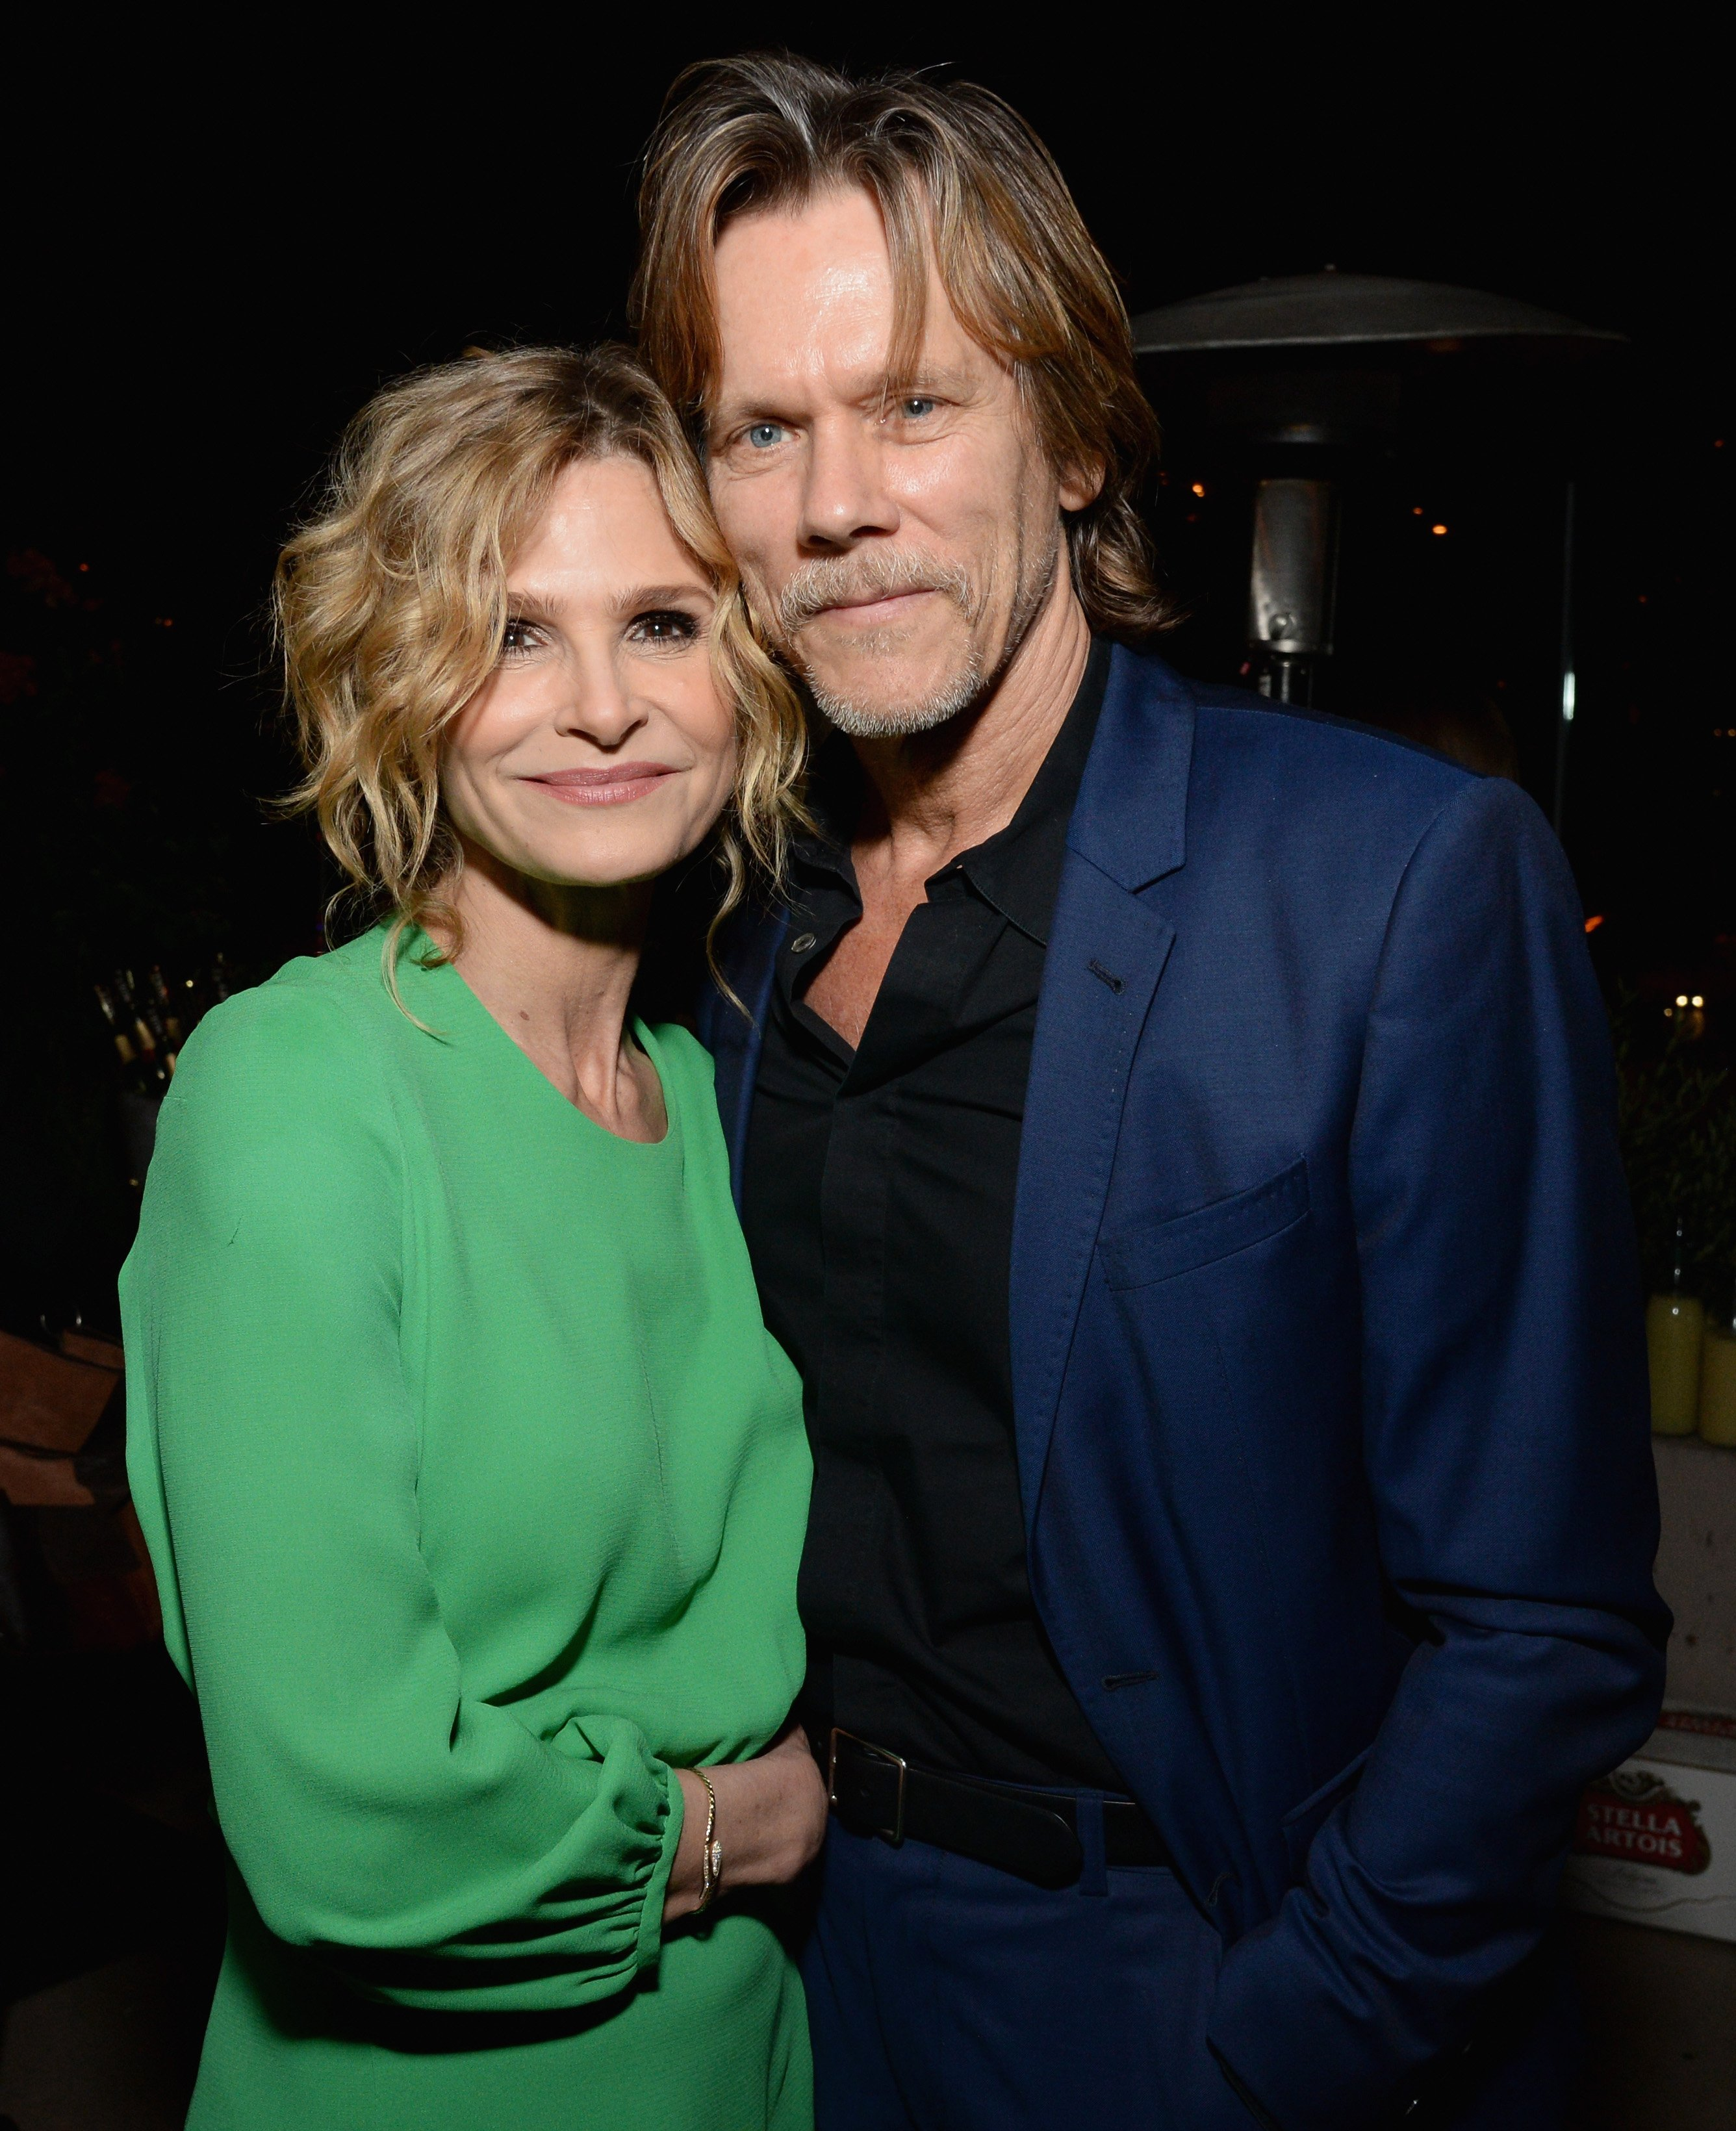 Kyra Sedgwick (L) and Kevin Bacon at Moet Celebrates The 75th Anniversary of The Golden Globes Award Season at Catch LA on November 15, 2017 | Photo: GettyImages